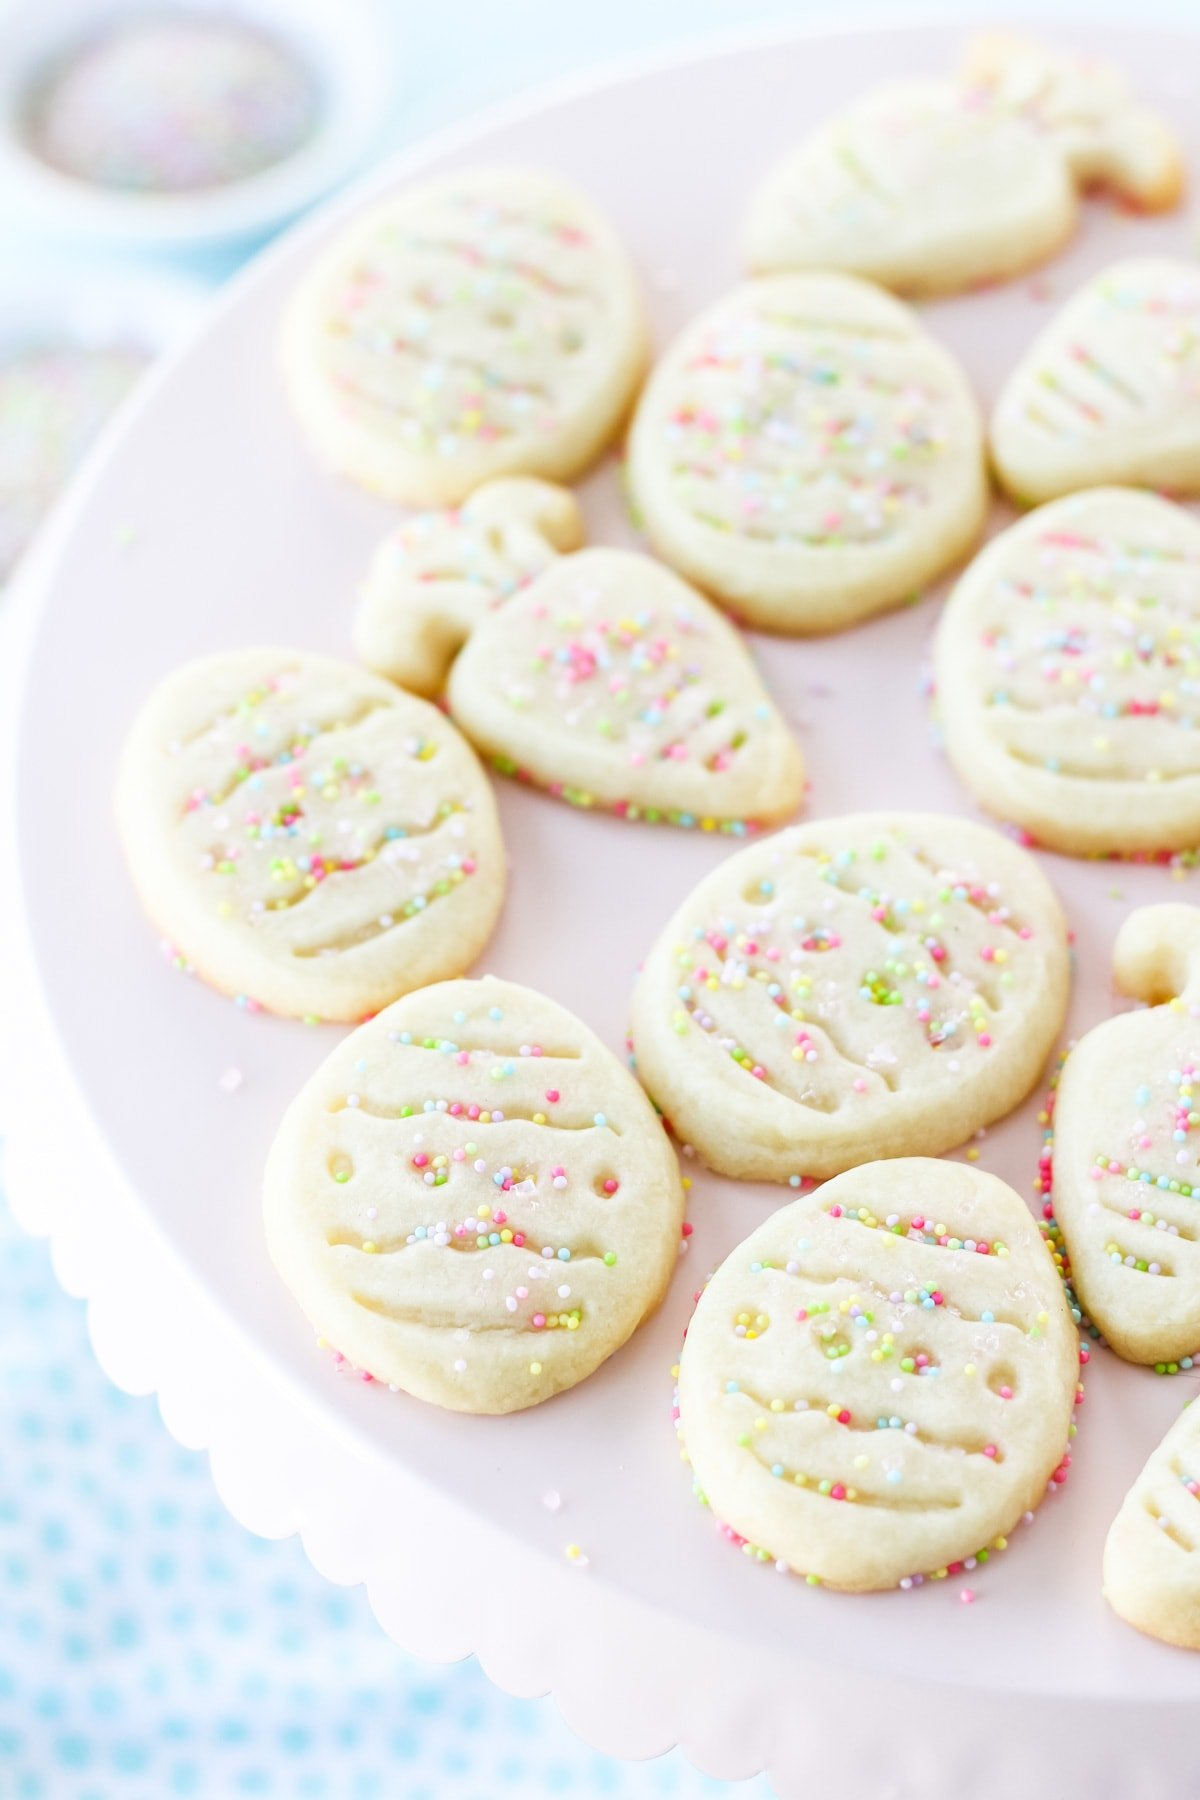 a pink cake plate full of shortbread cut out cookies in the shapes of Easter eggs and carrots. in the background is a small bowl of pastel colour sprinkles